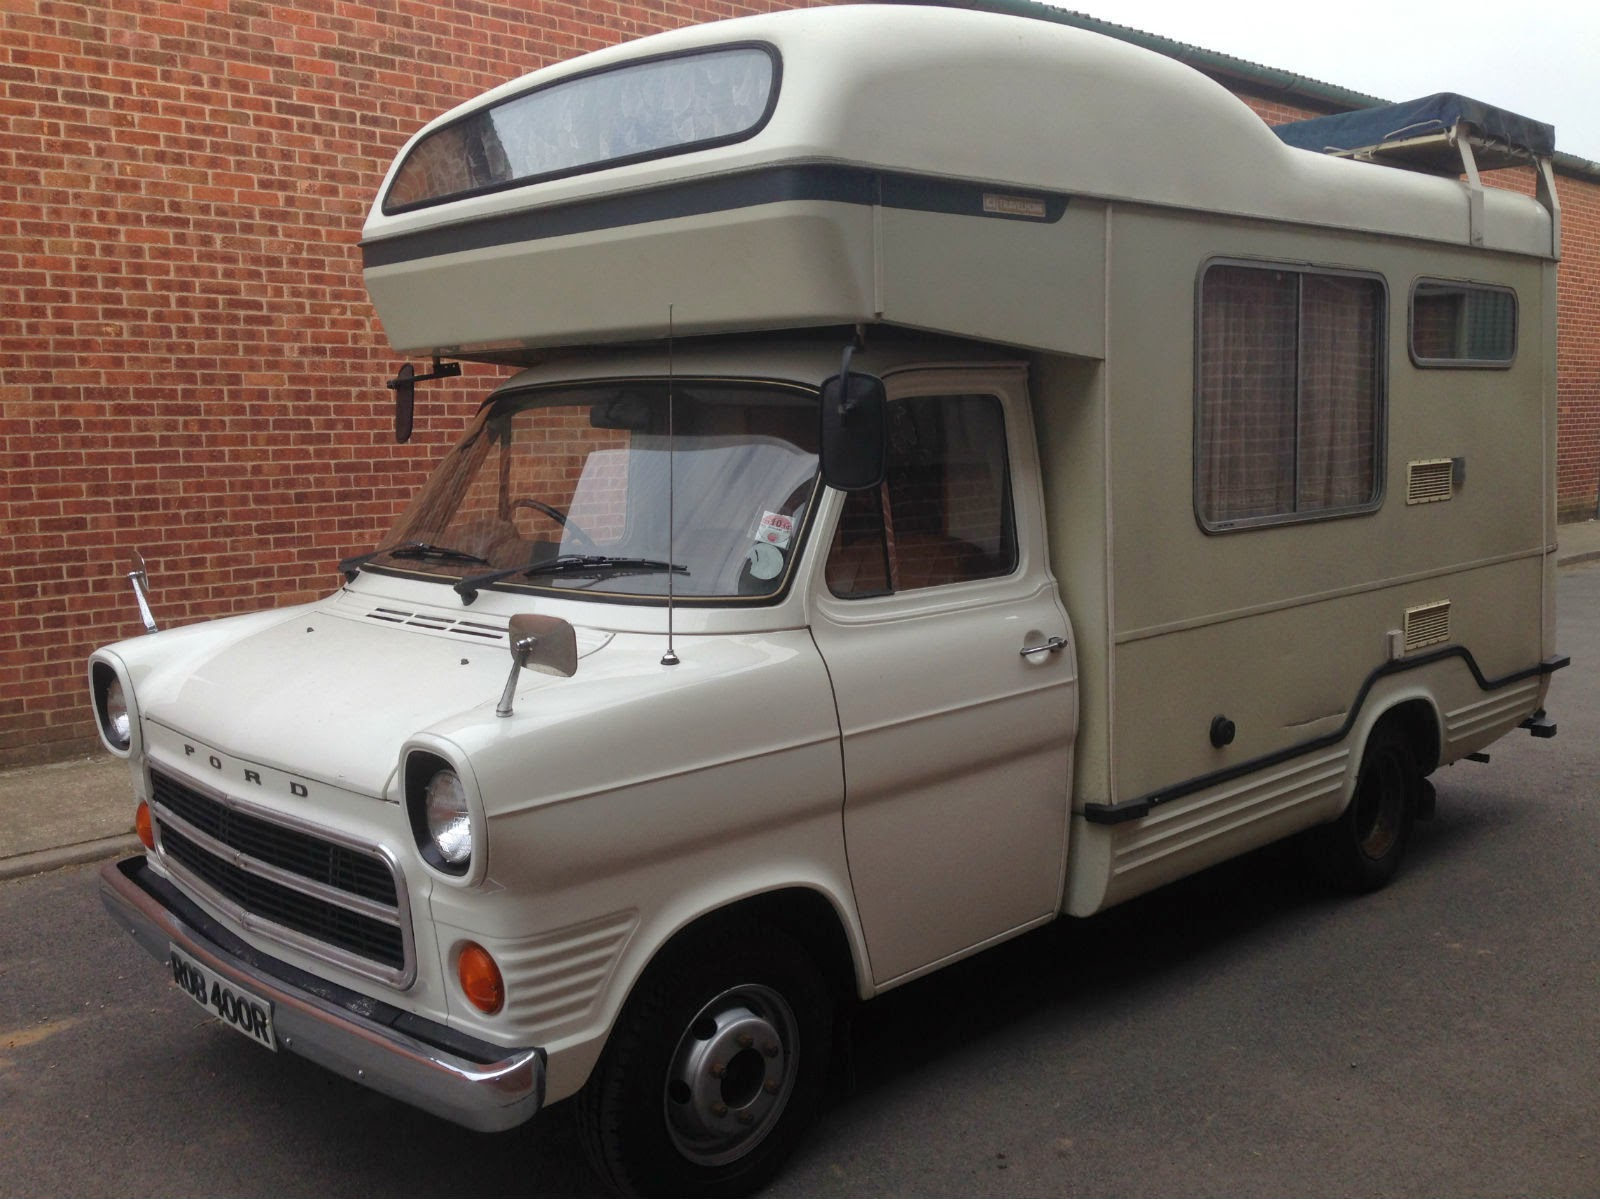 Motorhomes For Sale By Owner >> Used RVs 1977 Ford Transit MK1 Camper Motorhome For Sale by Owner